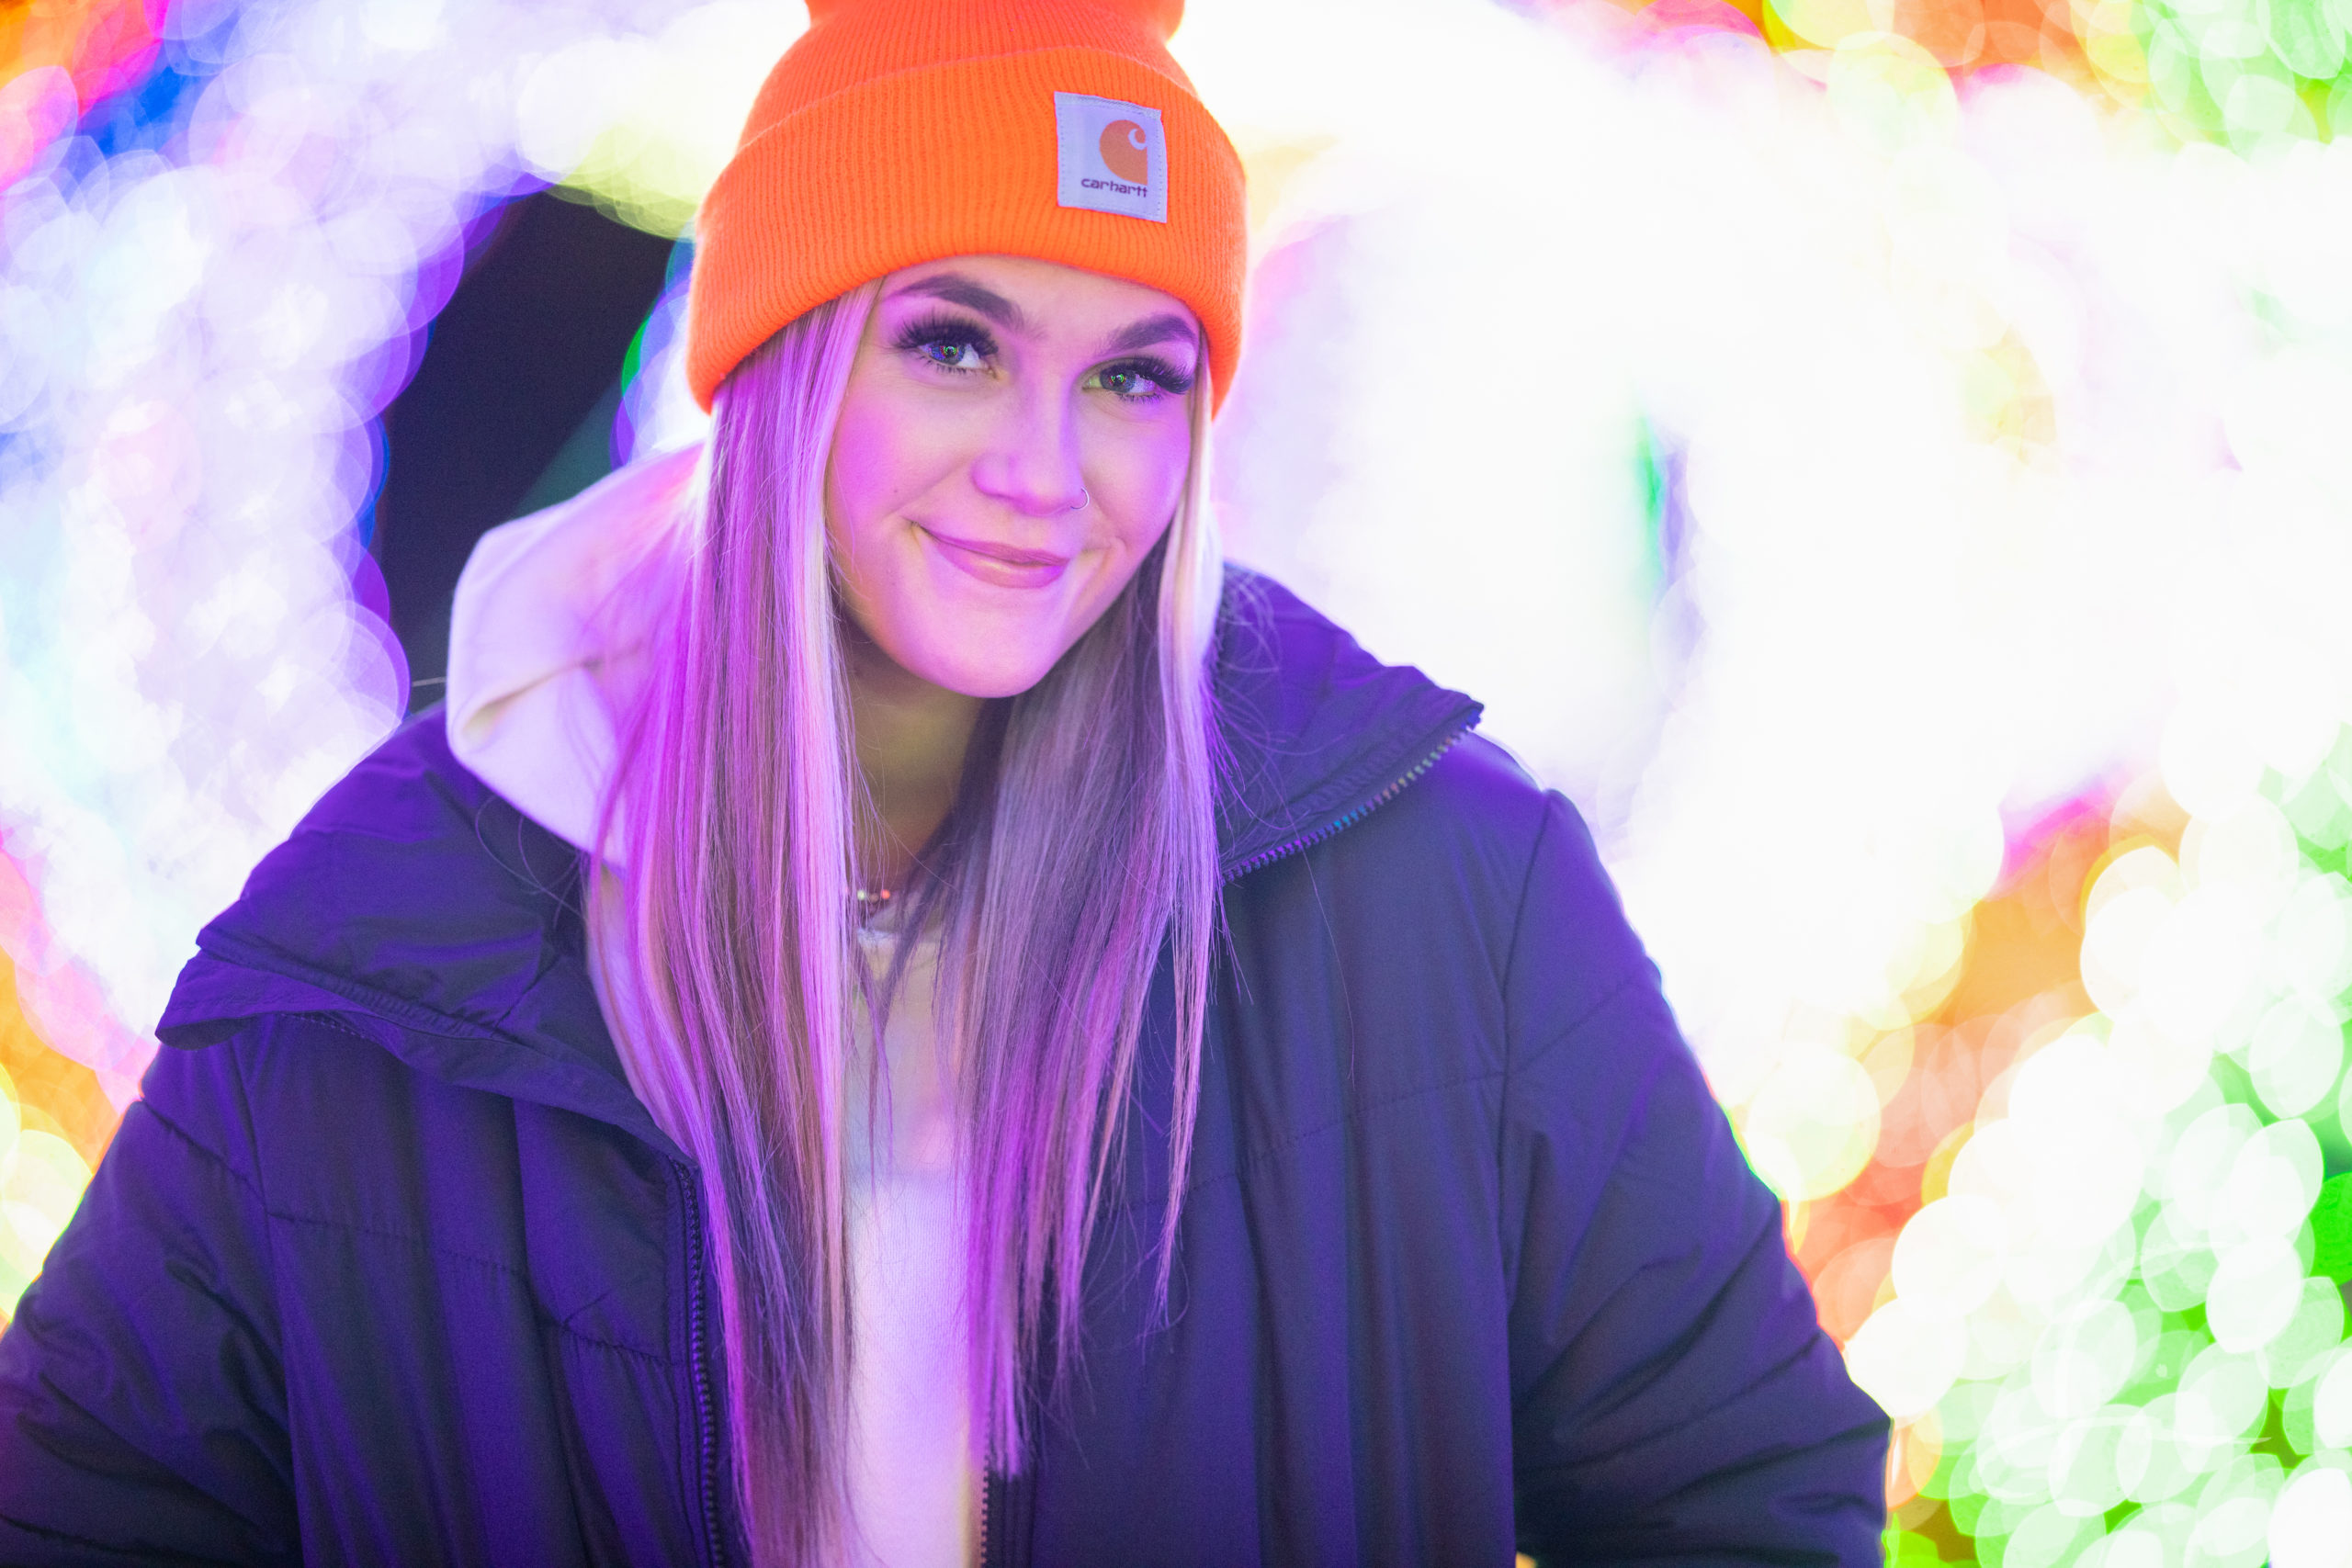 senior girl portrait in twinkle lights wearing a jacket and beanie hat